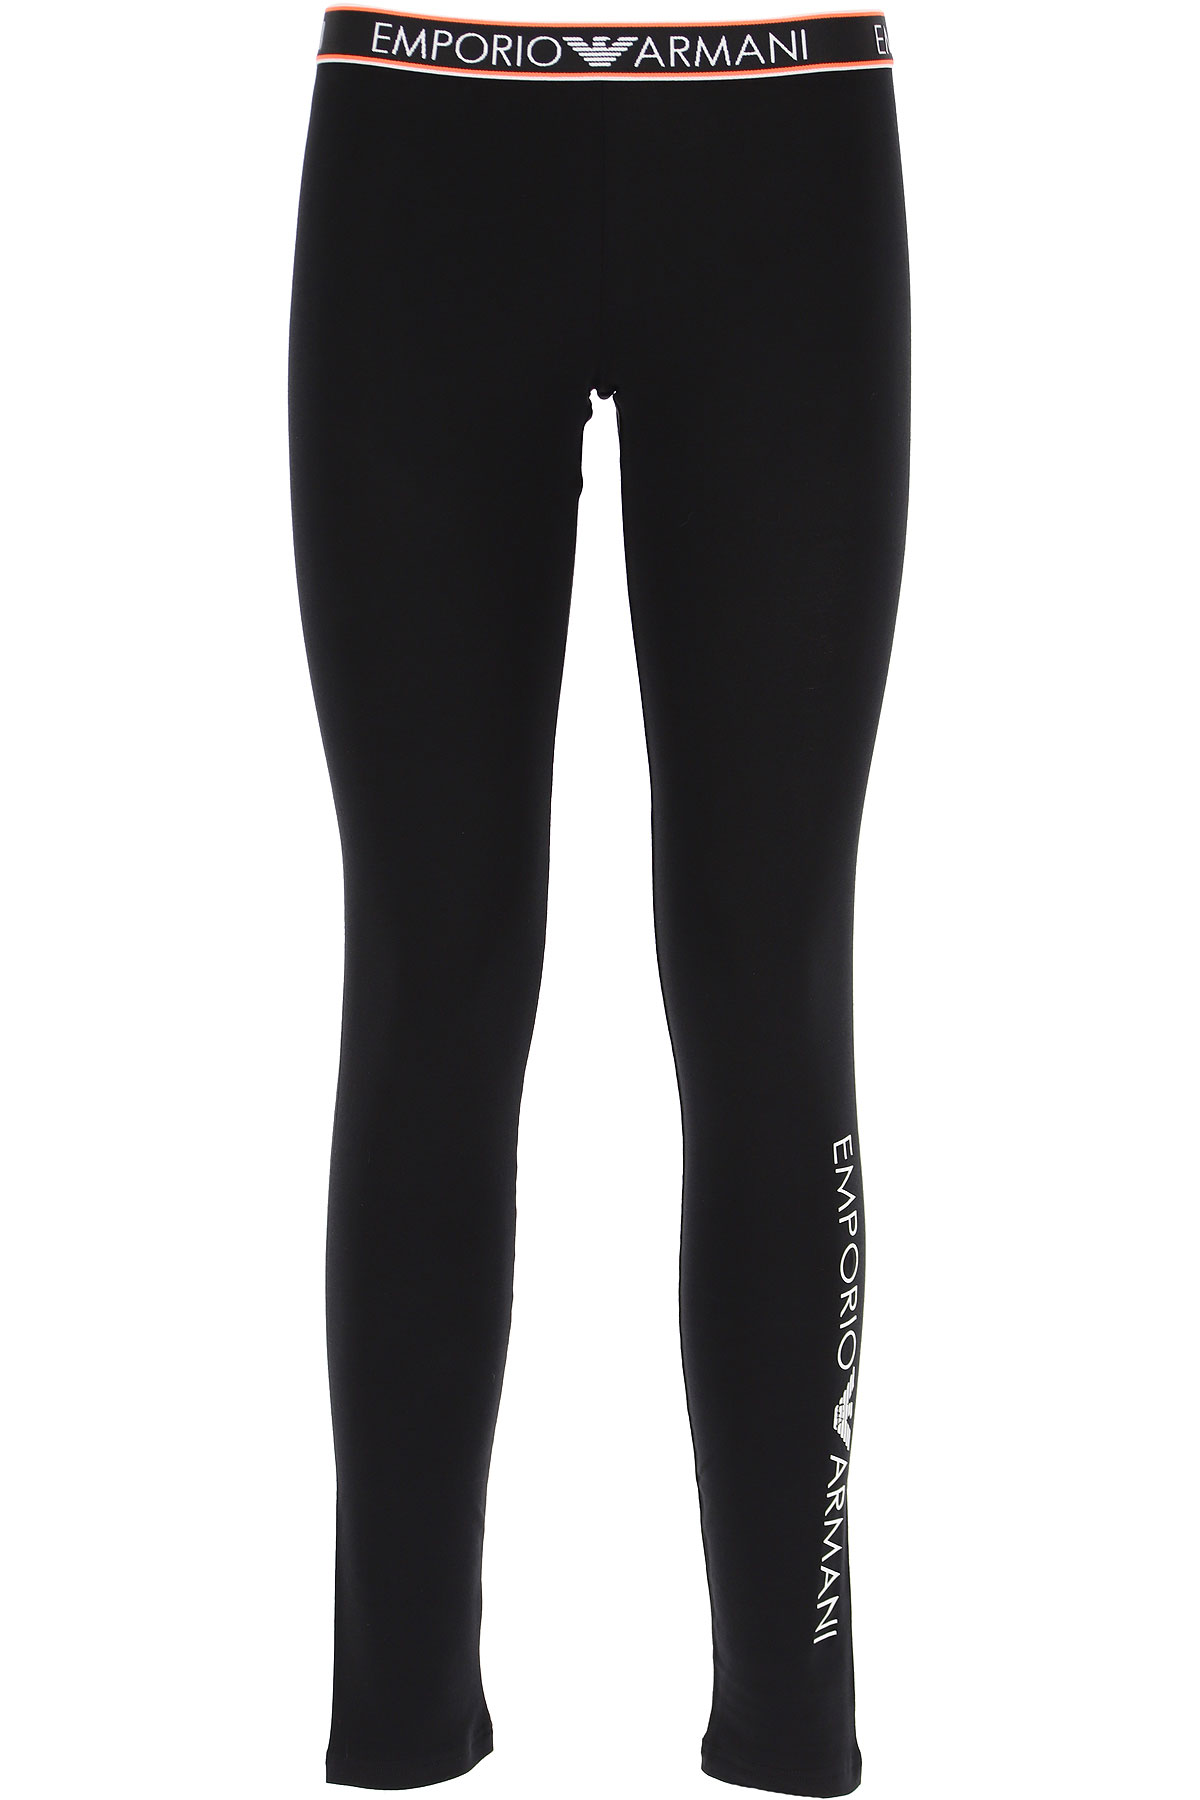 Emporio Armani Women's Sportswear for Gym Workouts and Running On Sale, Black, Cotton, 2019, 2 4 6